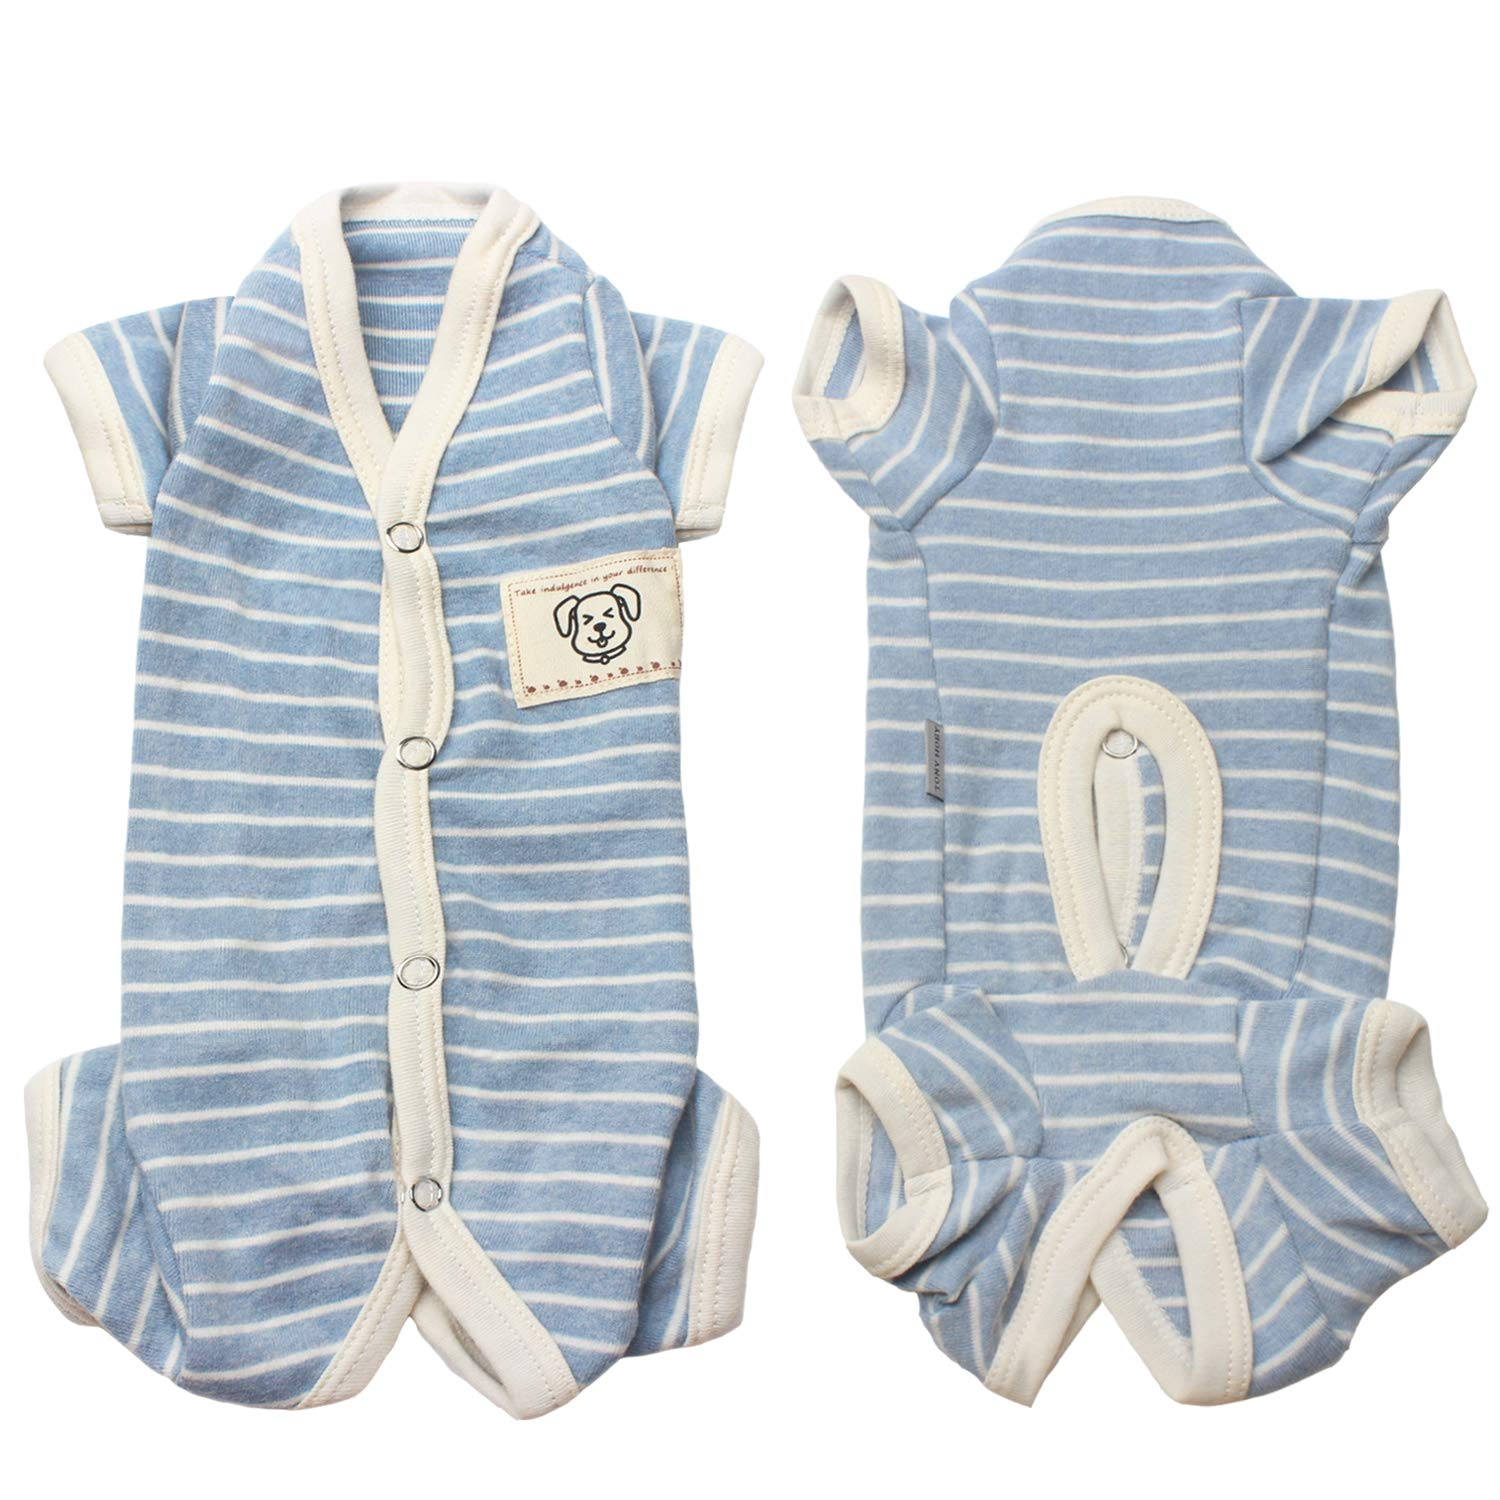 TONY HOBY Female/Male Pet Dog Pajamas Stripes 4 Legged Dog pjs Jumpsuit Soft Cotton Dog Clothes(L, Blue+White-Boys)